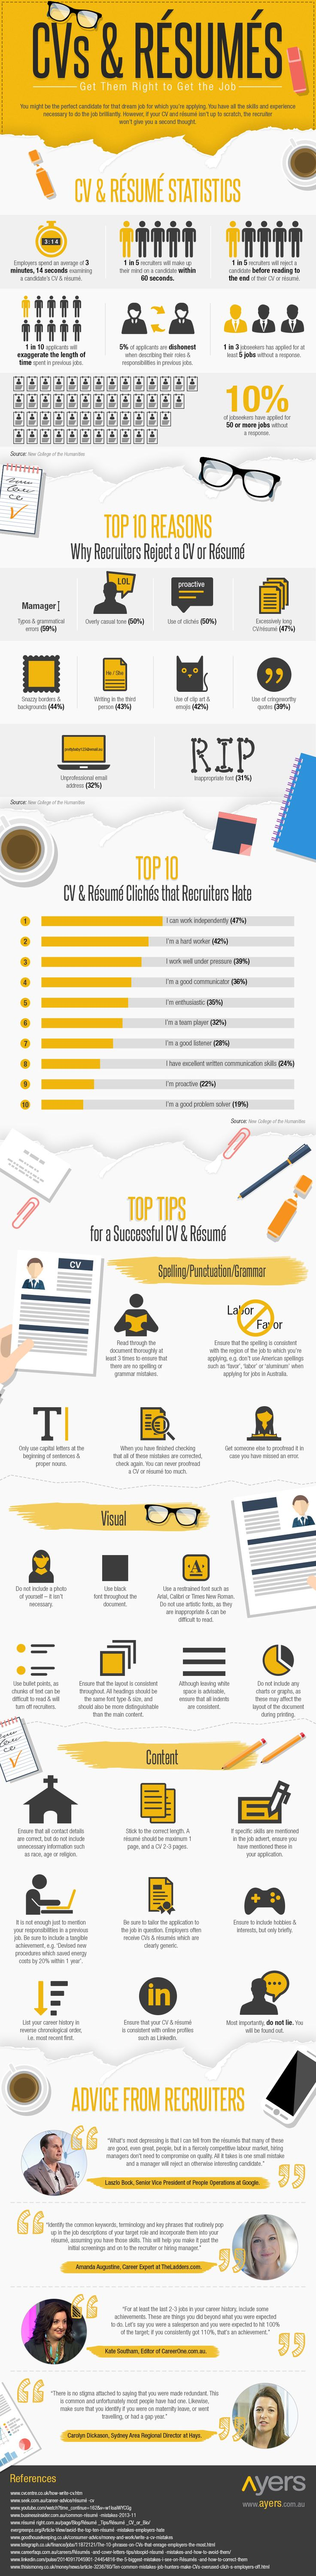 CVs and resume facts and figures